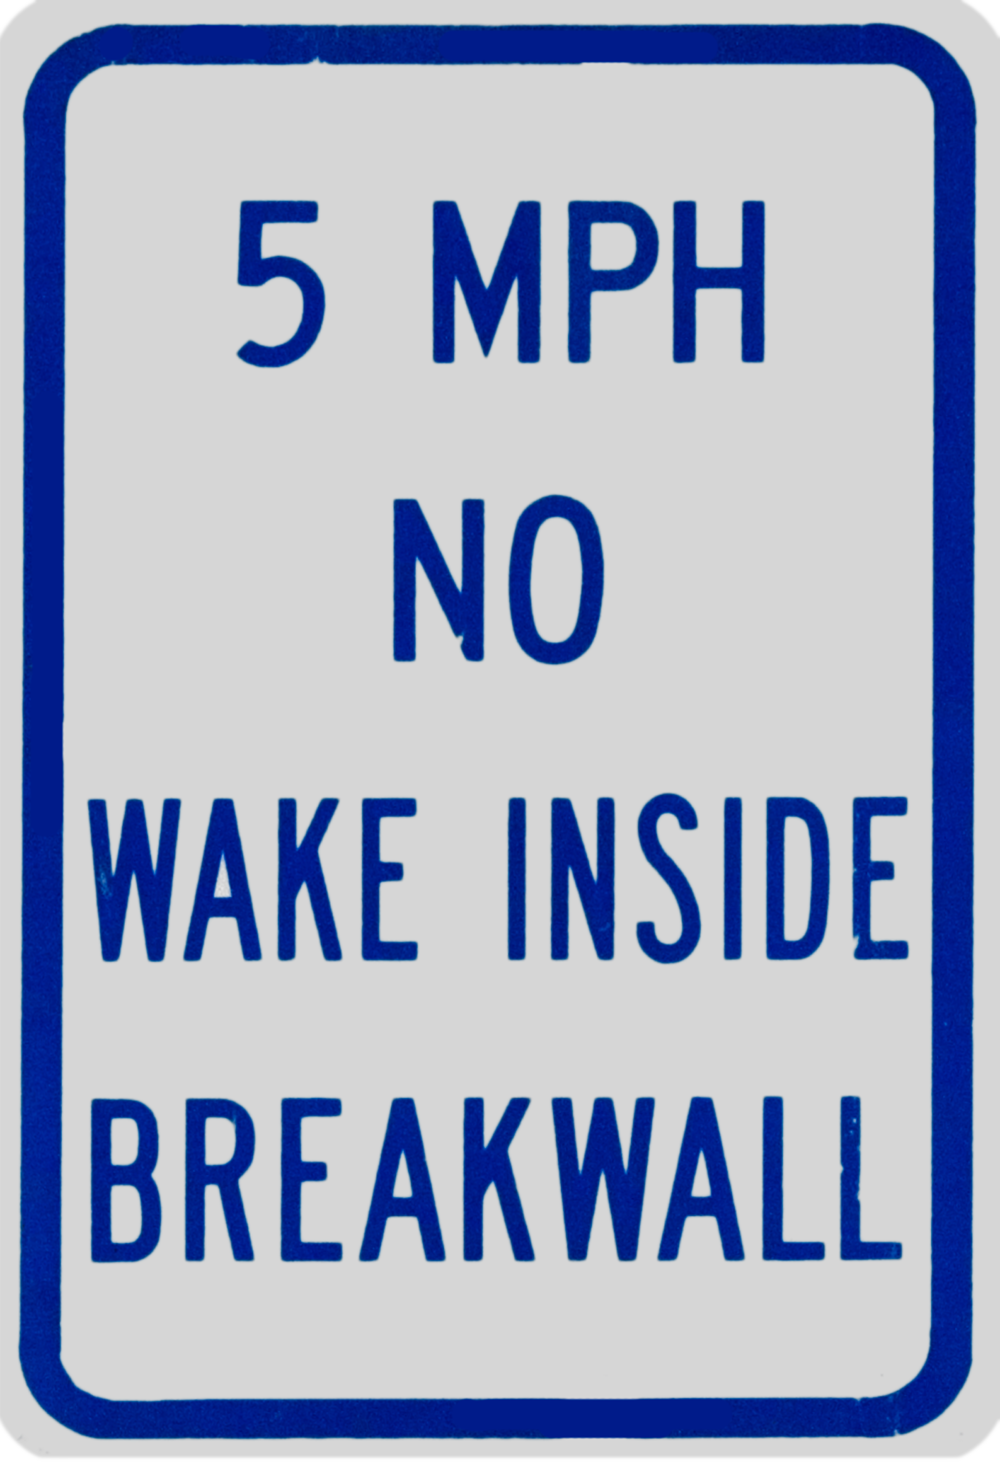 5 MPH No Breakwall.png